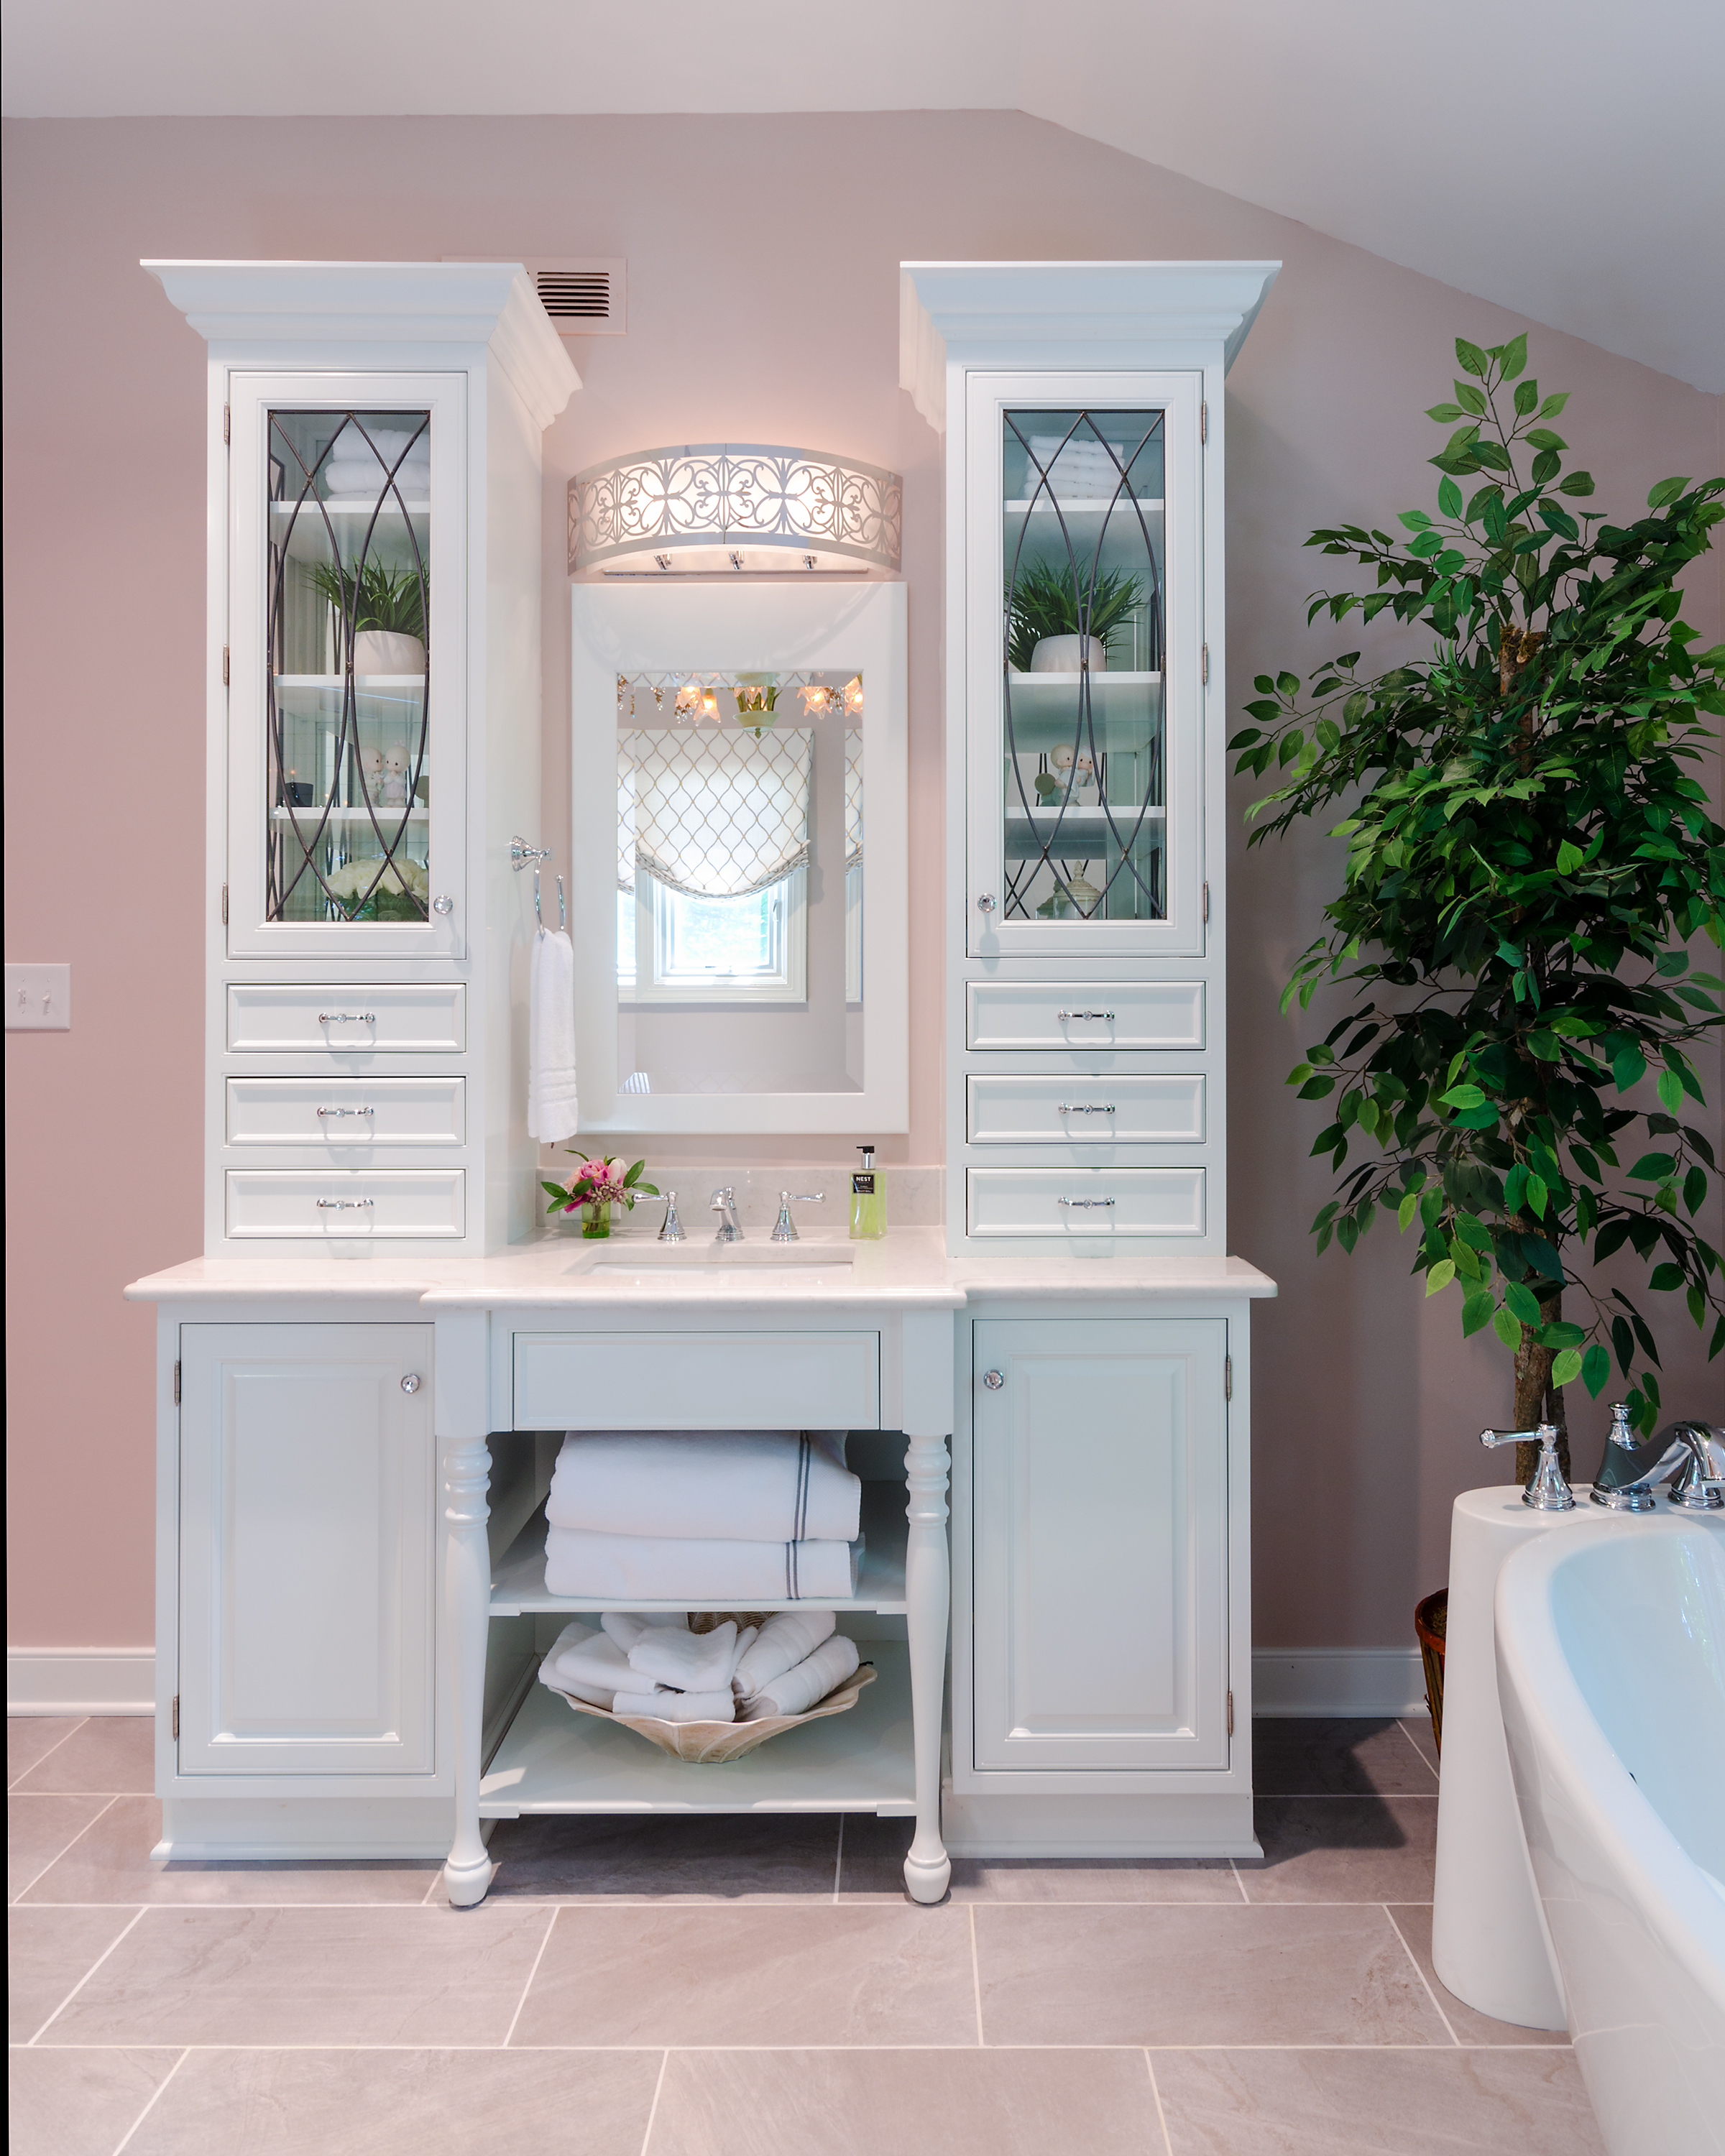 Custom-Kitchens-Wolenberg-Master-Bath-Vanity-Tub-52214.jpg